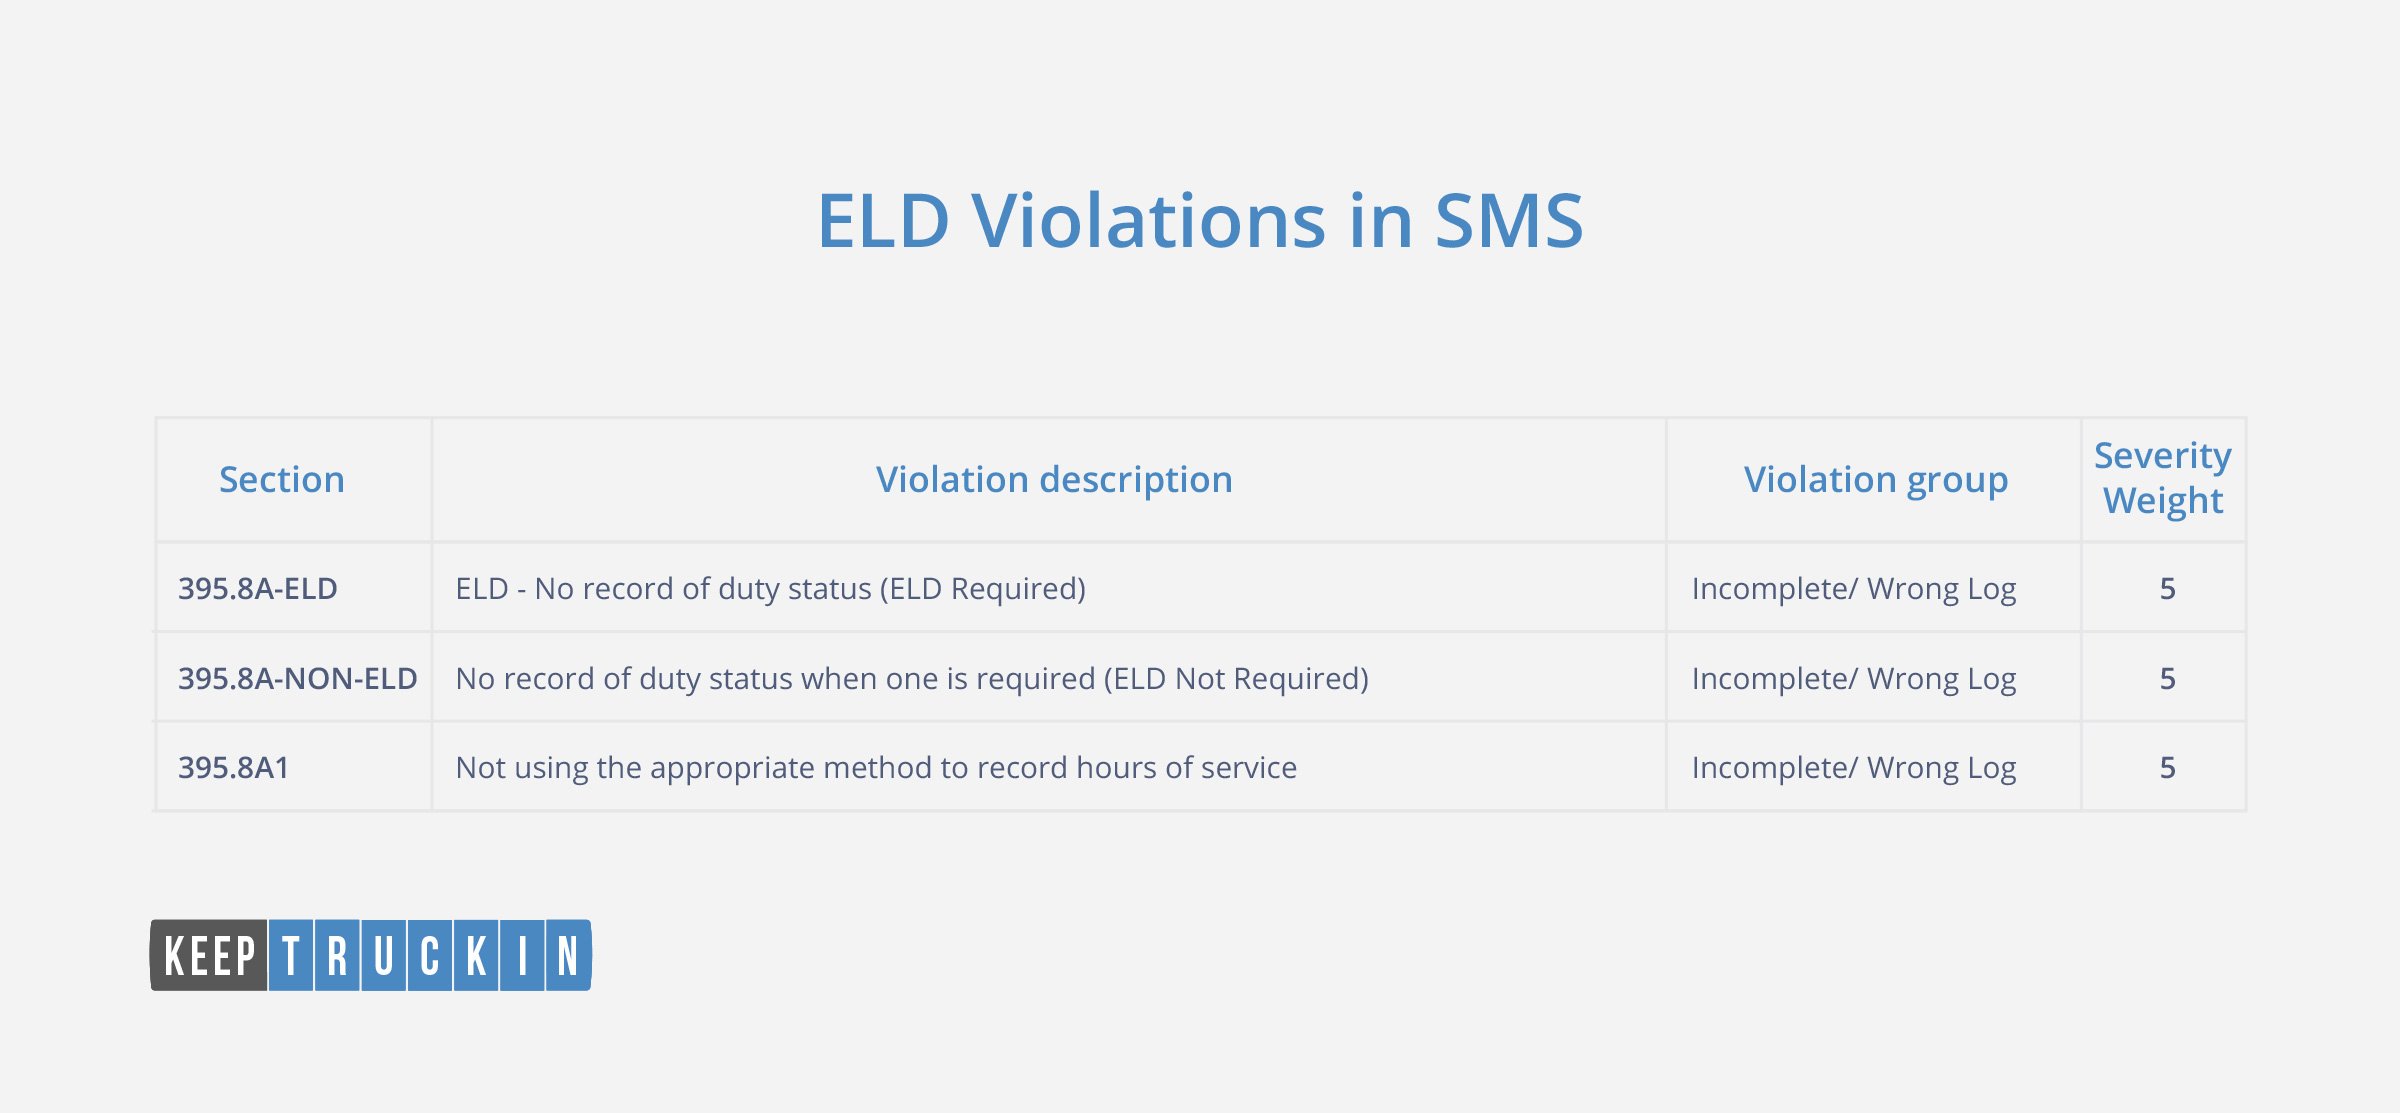 3 new ELD violations with violation severity weight